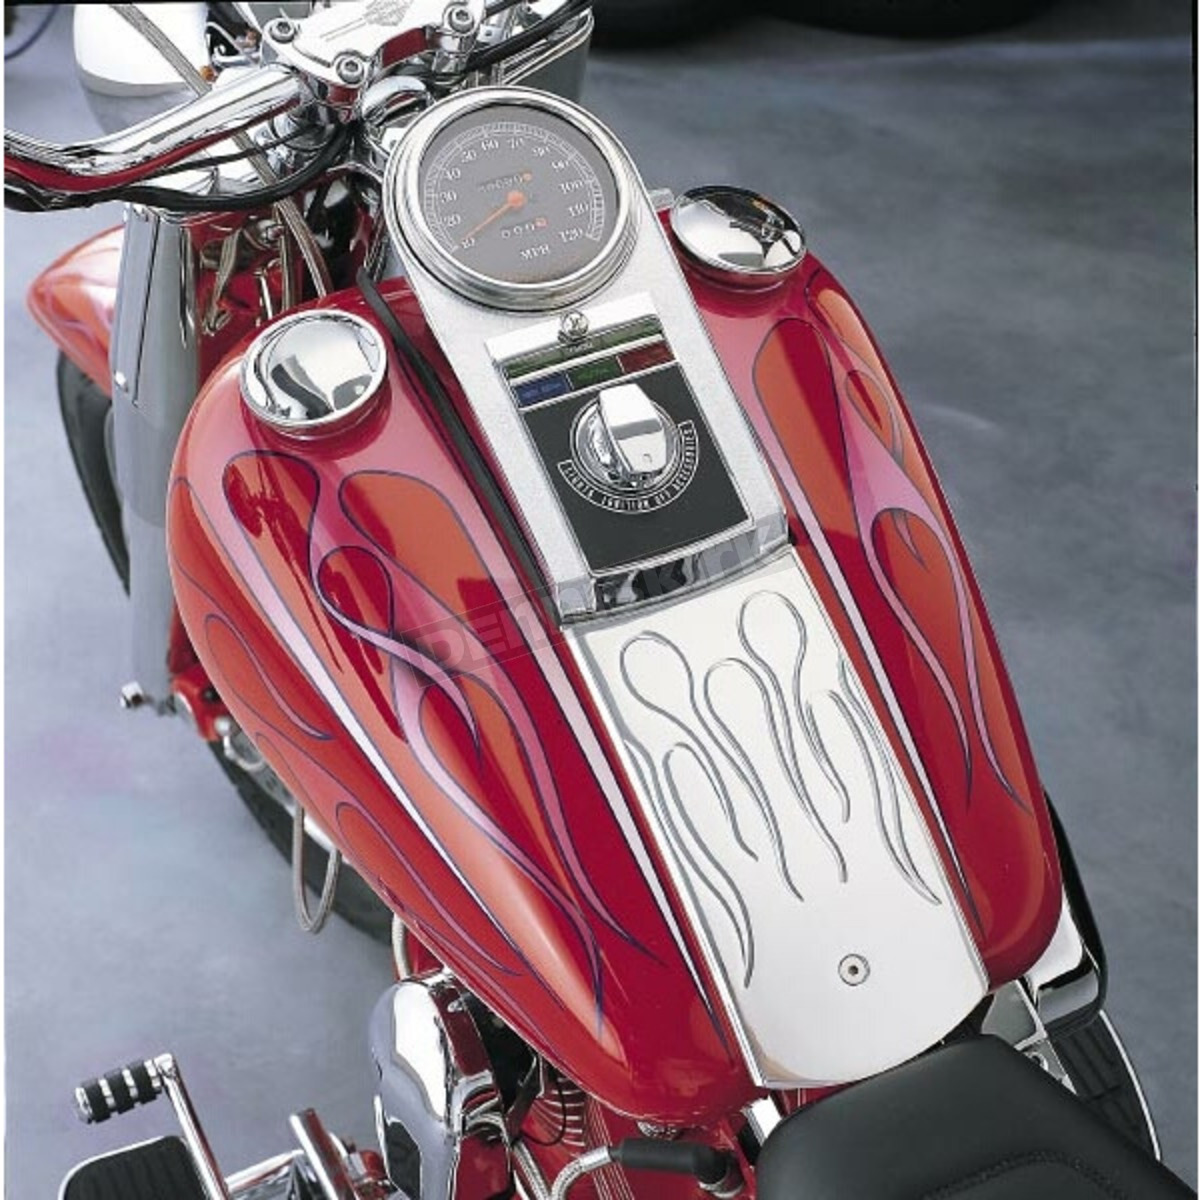 Chrome Dash Panel Kit with 1:1 Ratio Speedometer,for Harley Davidson,by V-Twin